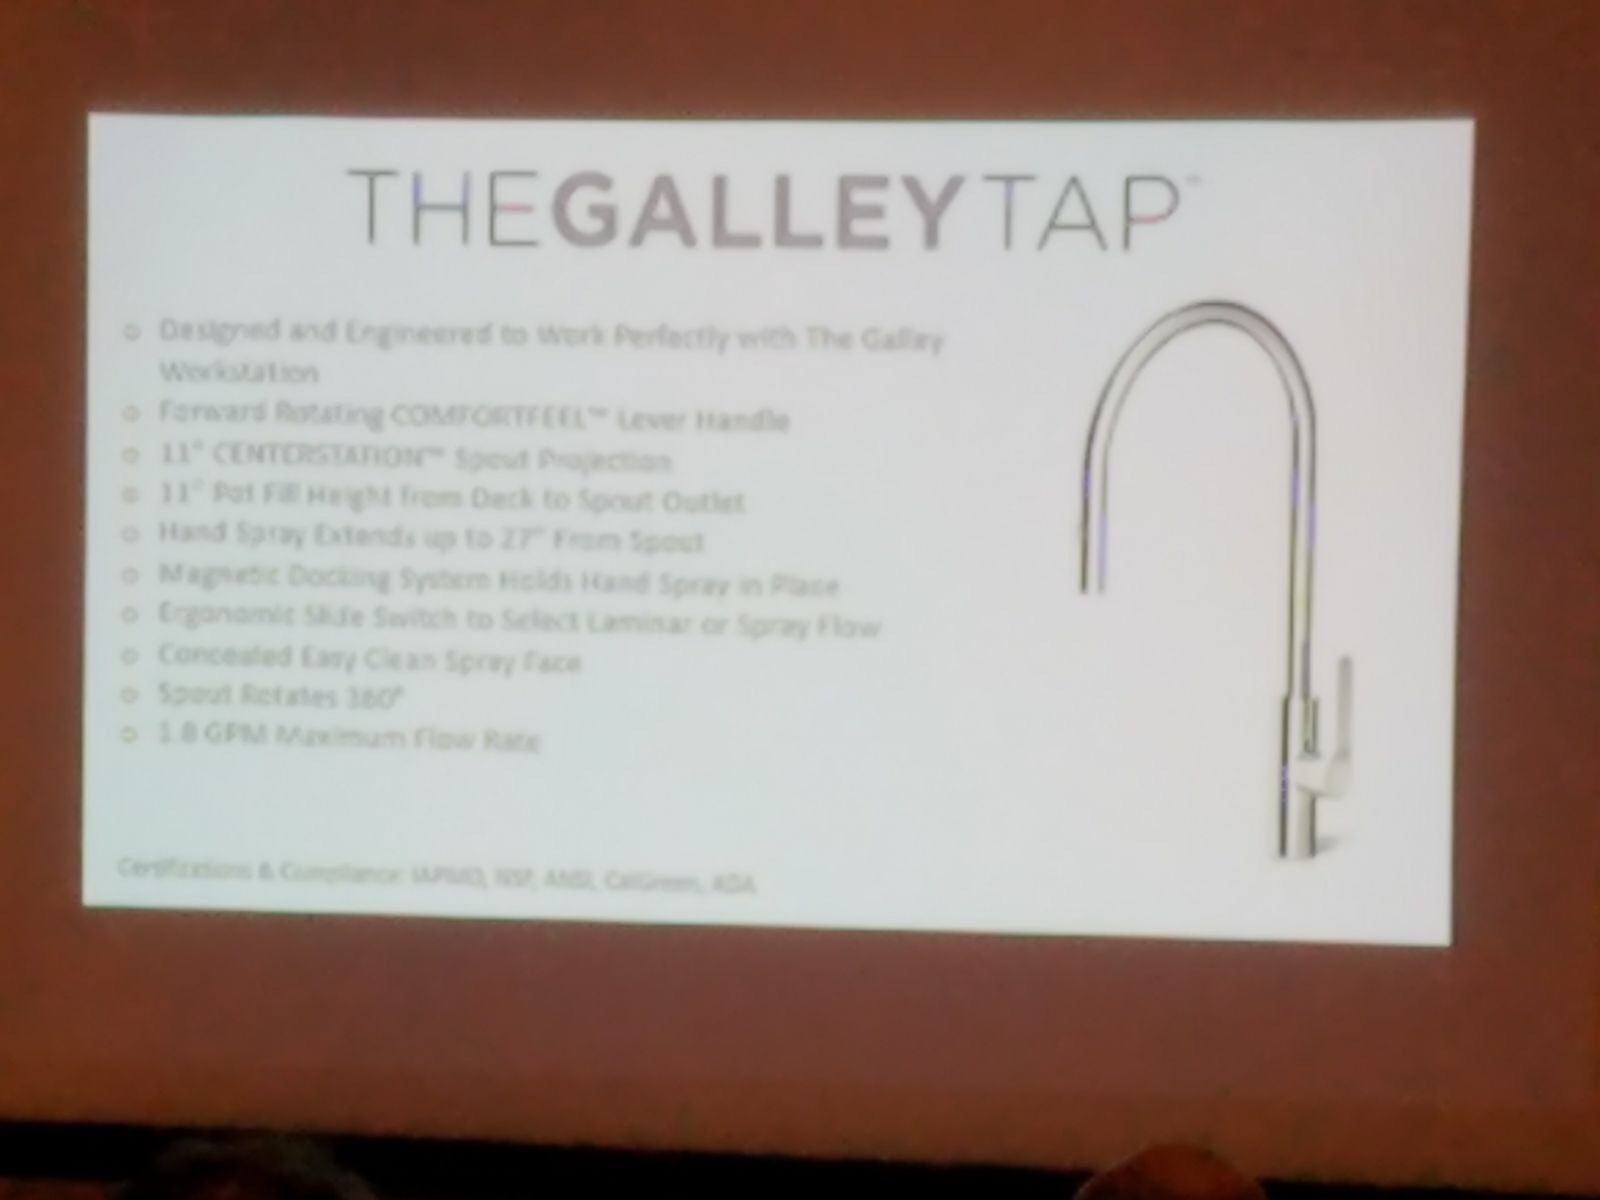 Galley Workstation featuring Galley tap presentation at SEN Fall 2017 conference